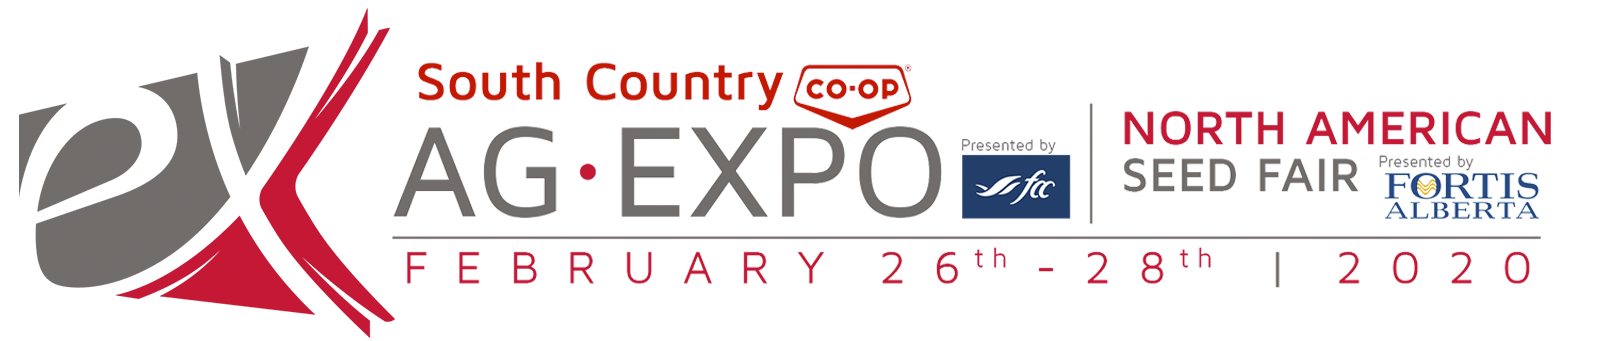 AG-EXPO & North American Seed Fair | Exhibition Park | Canada